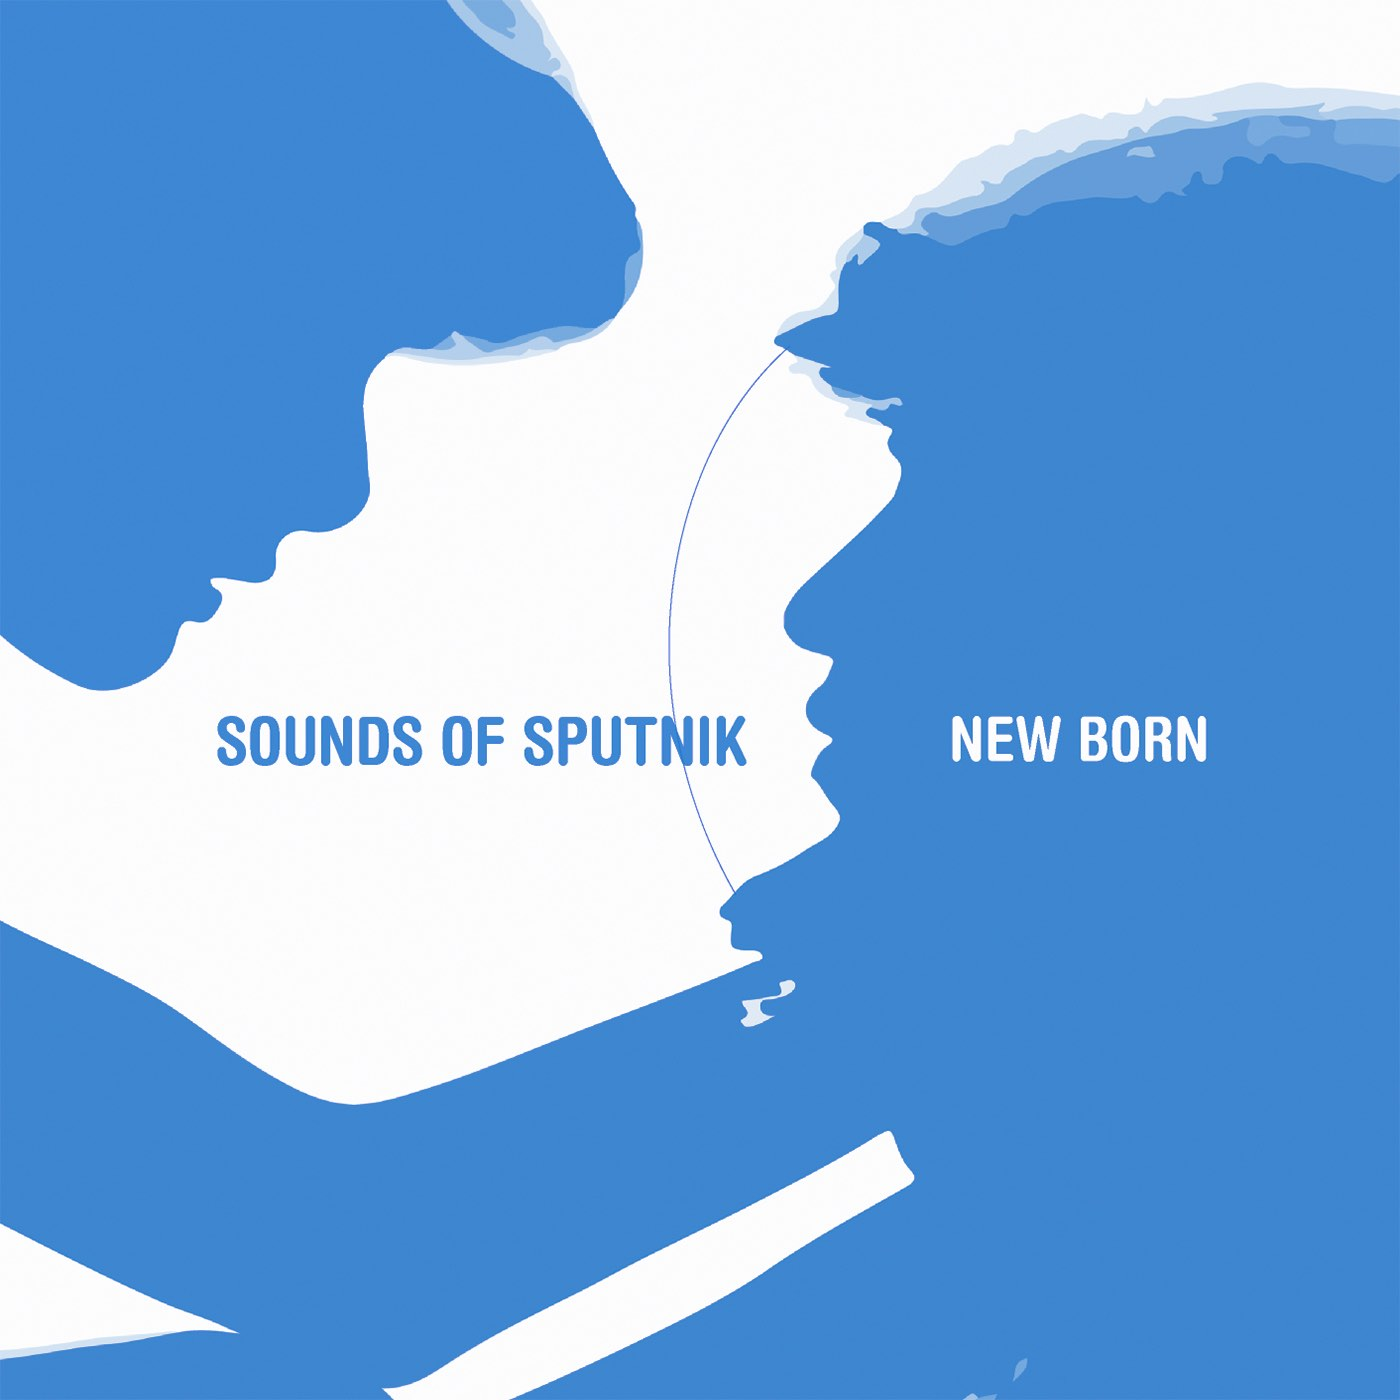 sounds of sputnik